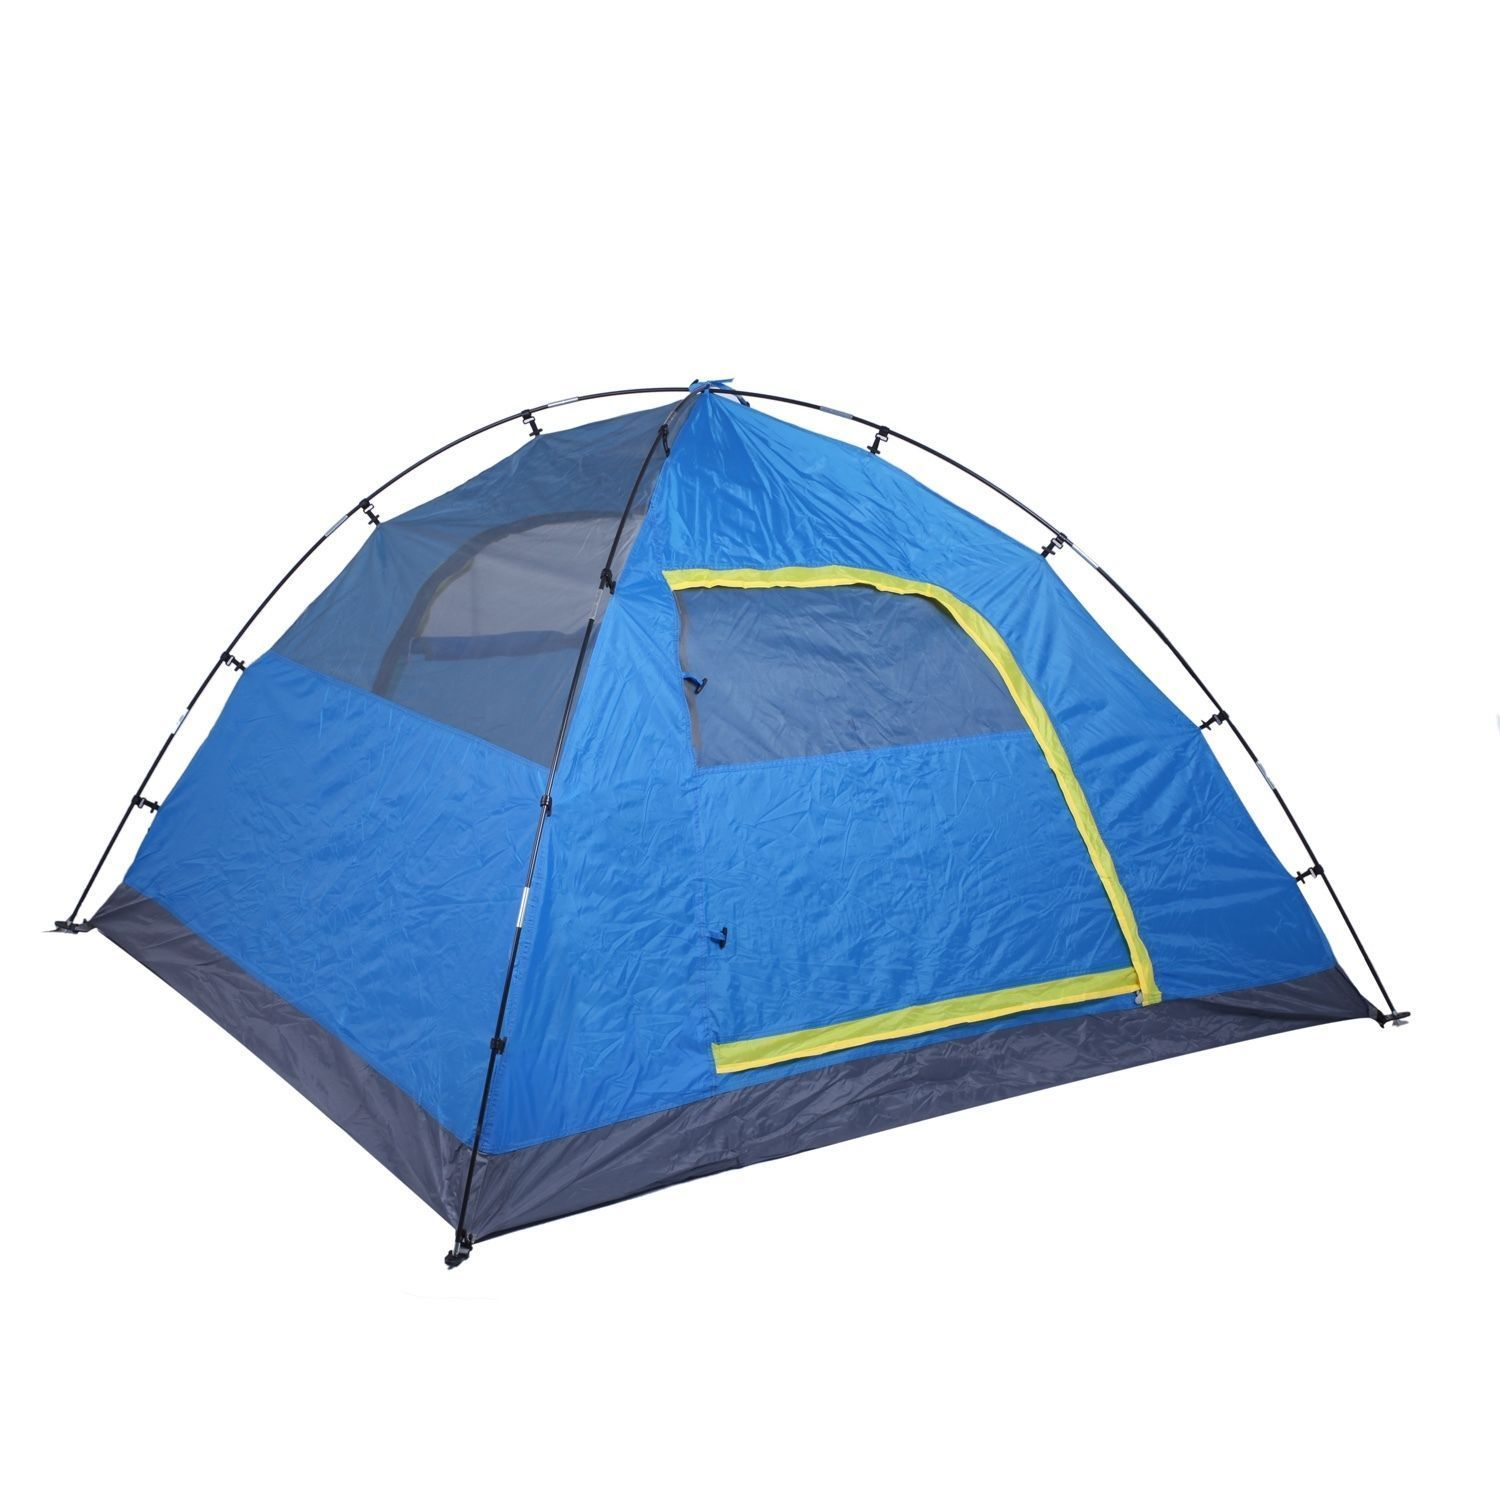 3-4 Person Auto Pop-up Camping Tent Outdoor Picnic Hiking ...